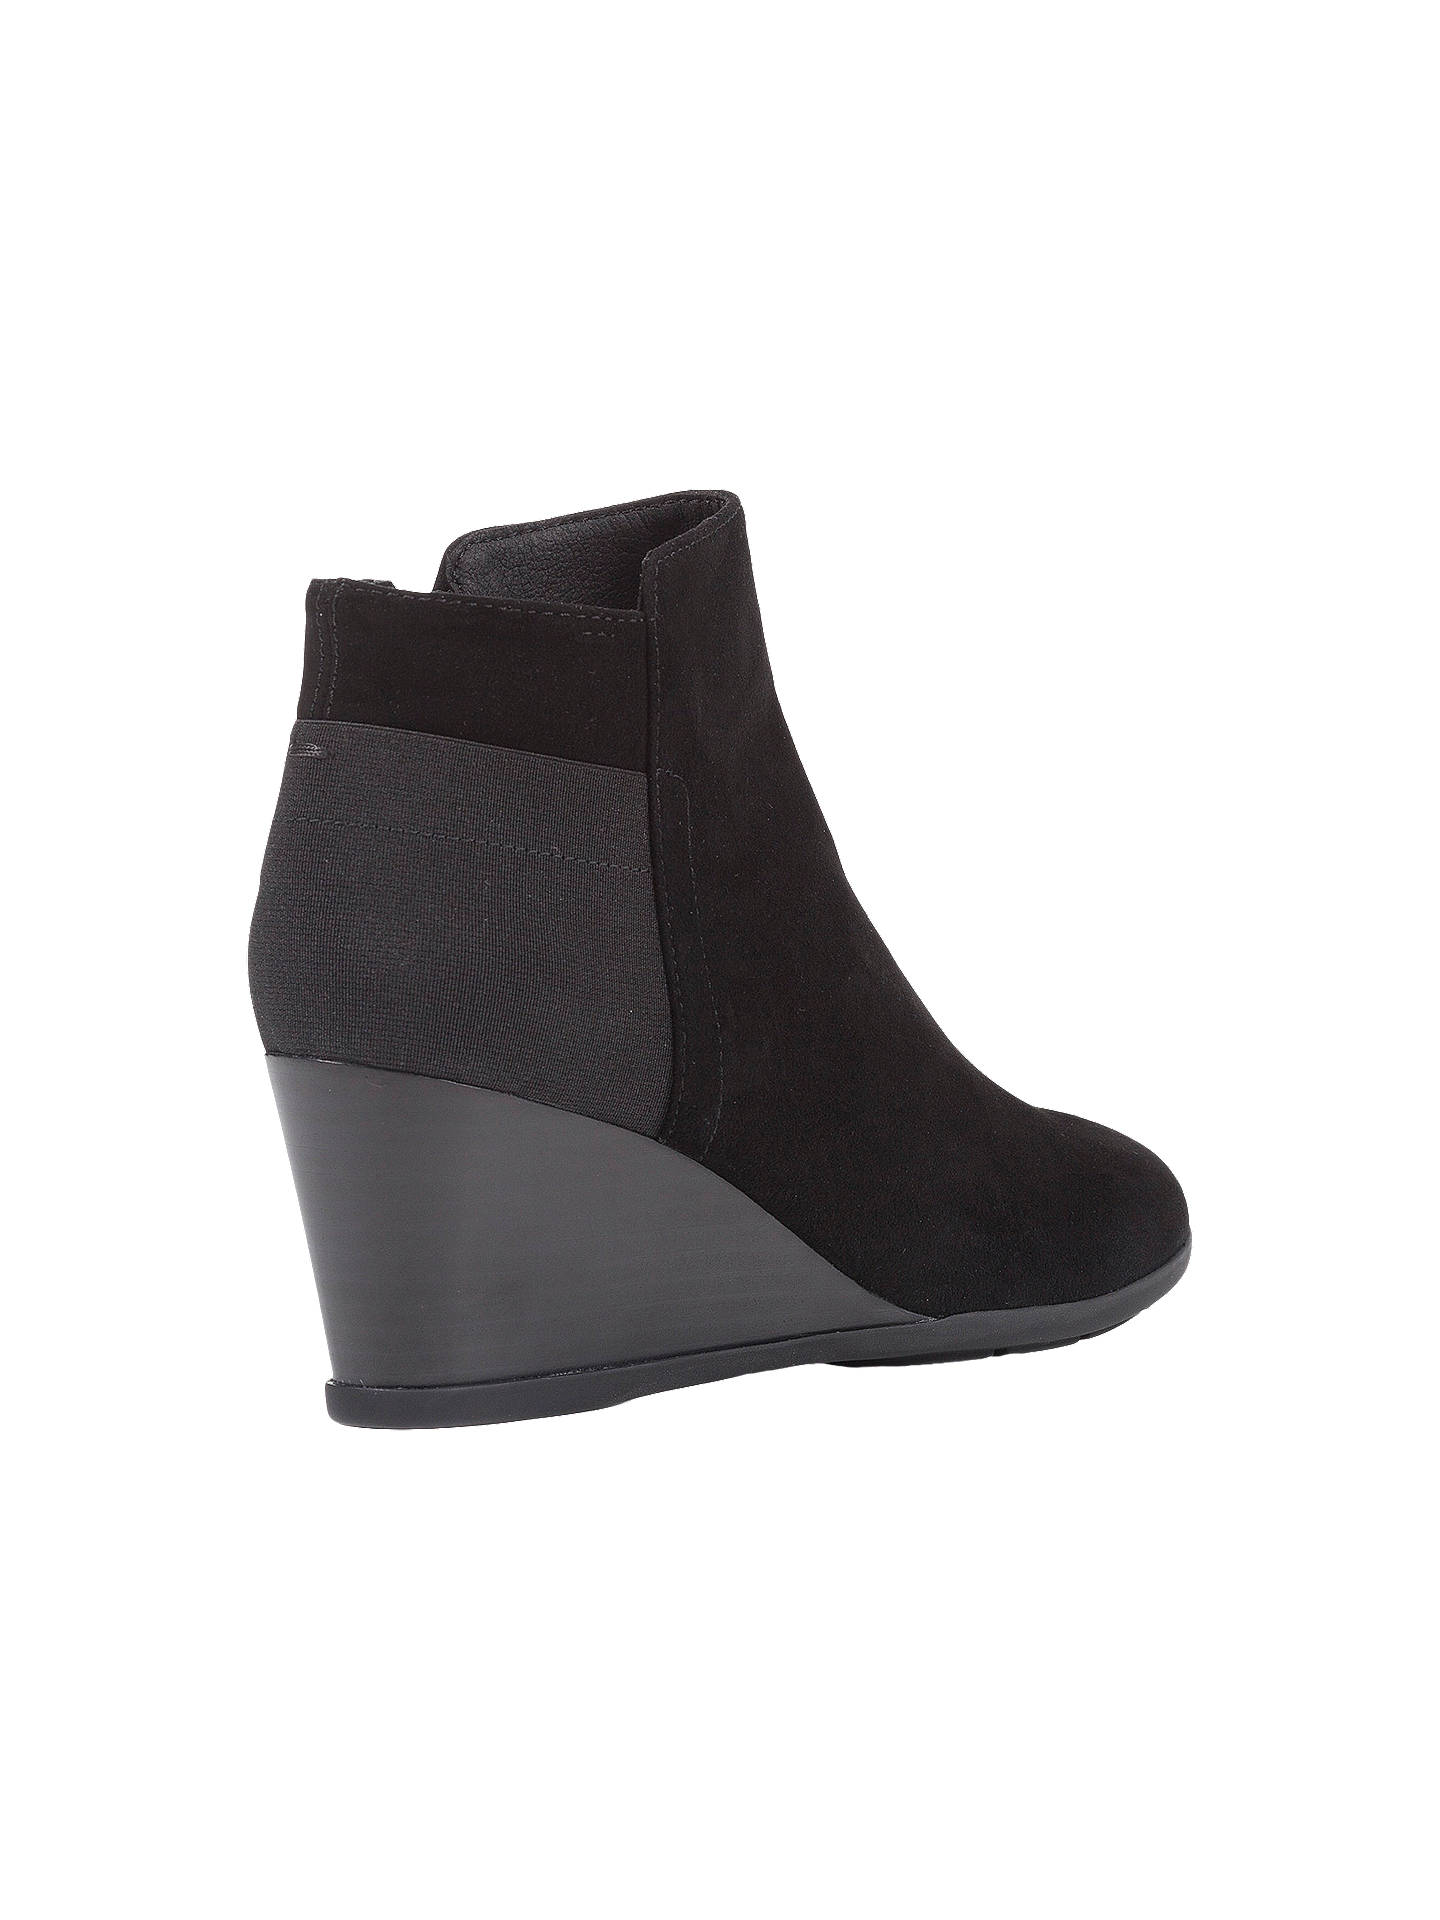 Geox Inspiration Wedge Ankle Boot